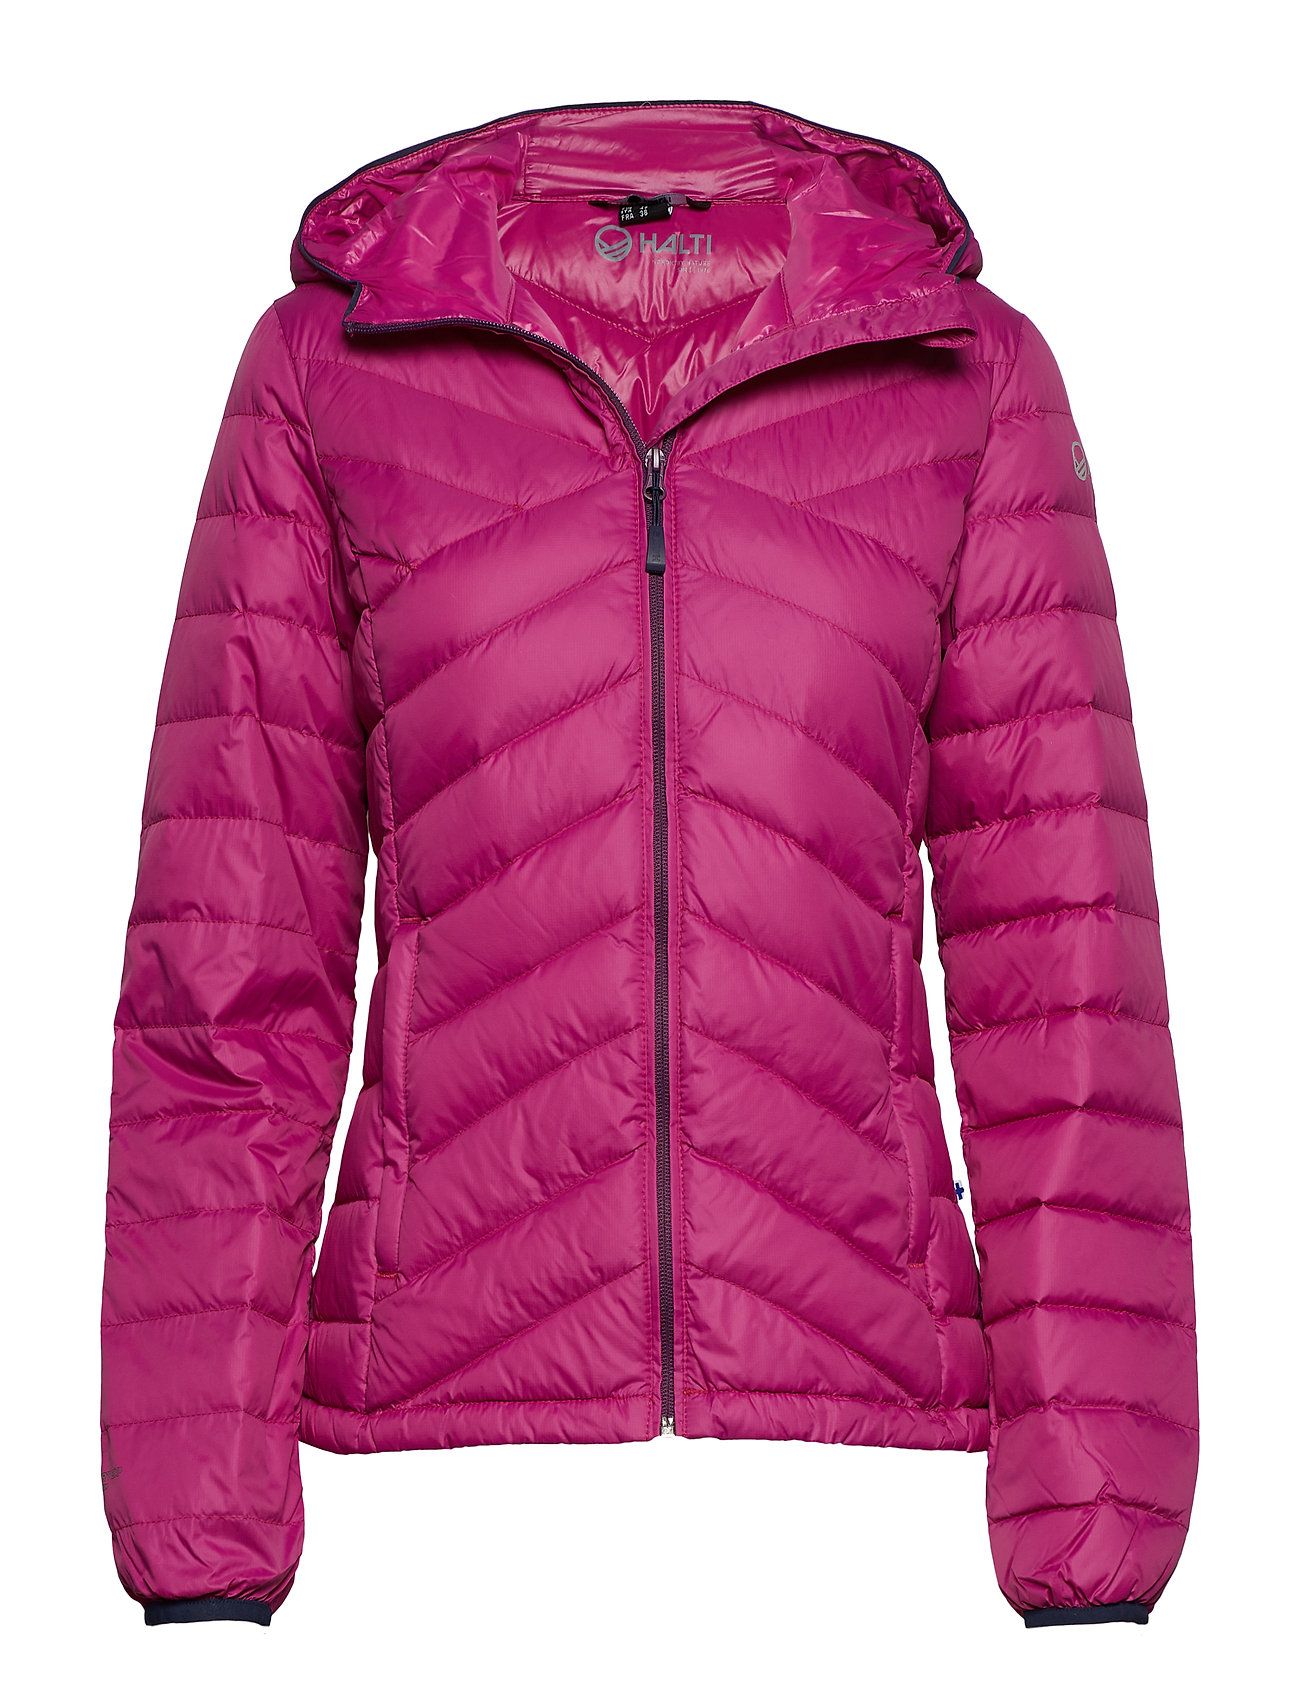 Halti Huippu W Down Jacket - WILD ASTER PURPLE